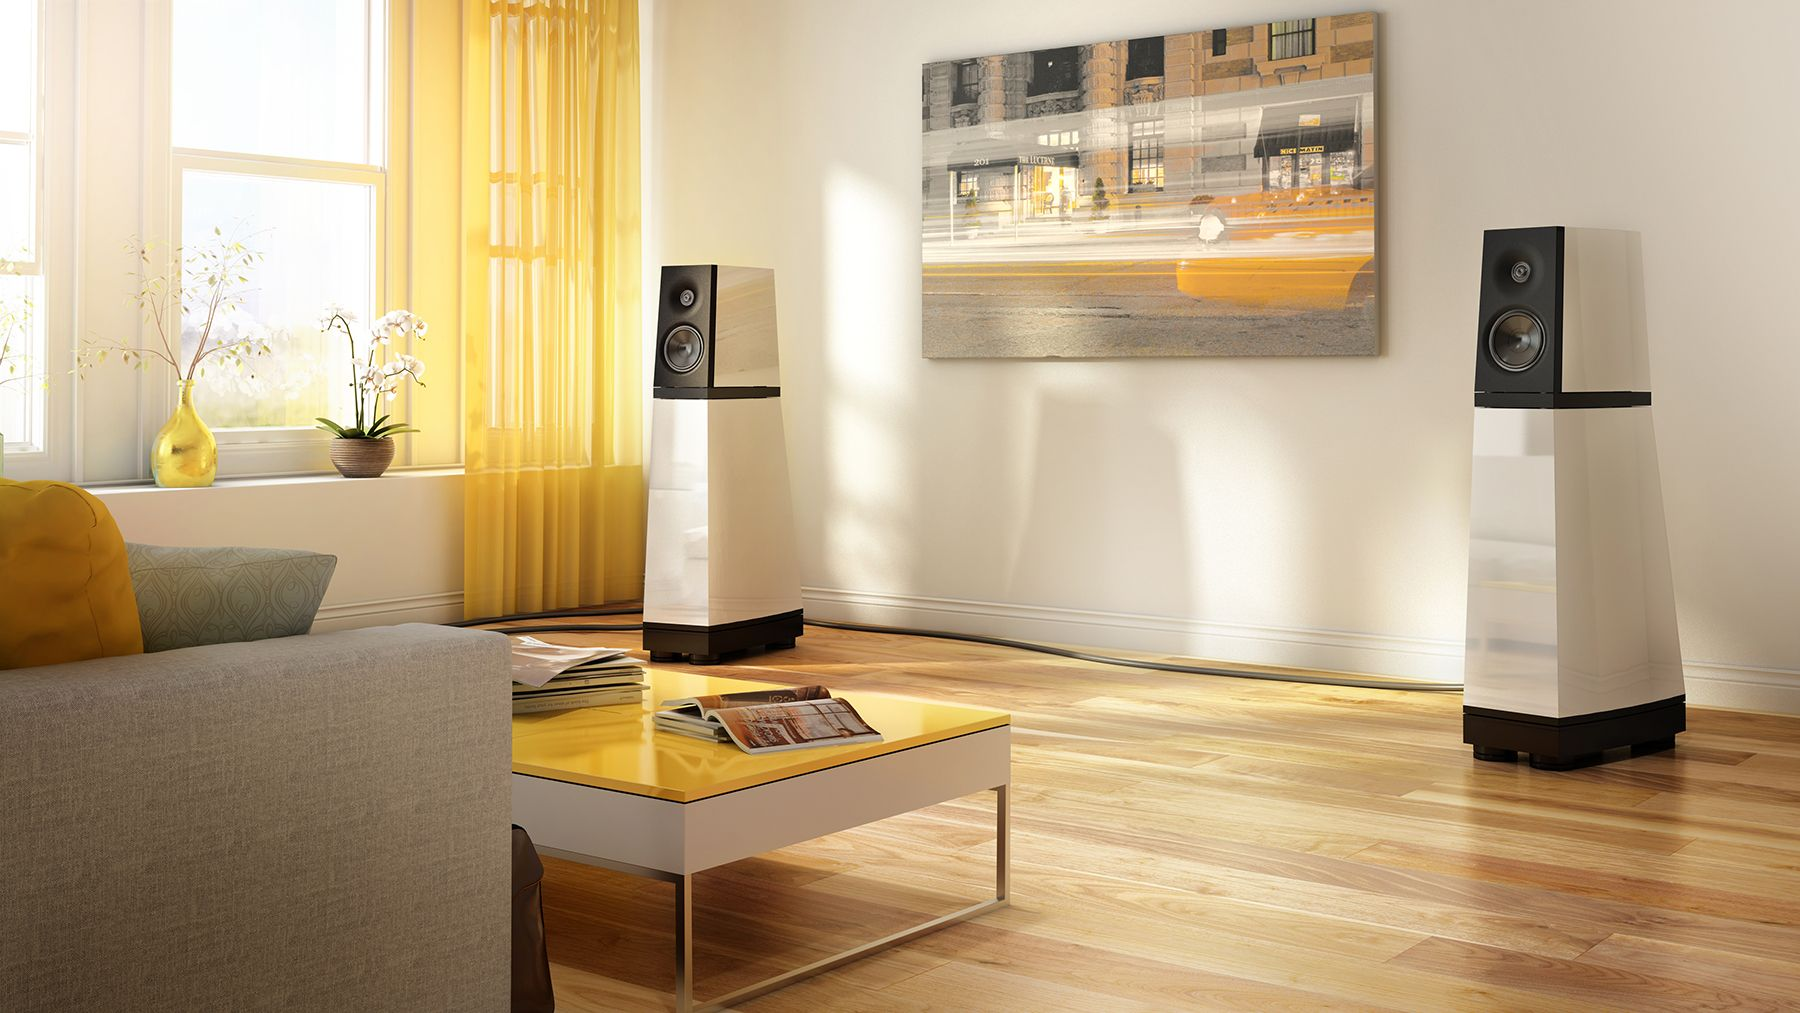 Integration D Un Systeme De Son Dans Un Salon Au Design Contemporain Modern Design And Sound System Design Contemporain Design Maison